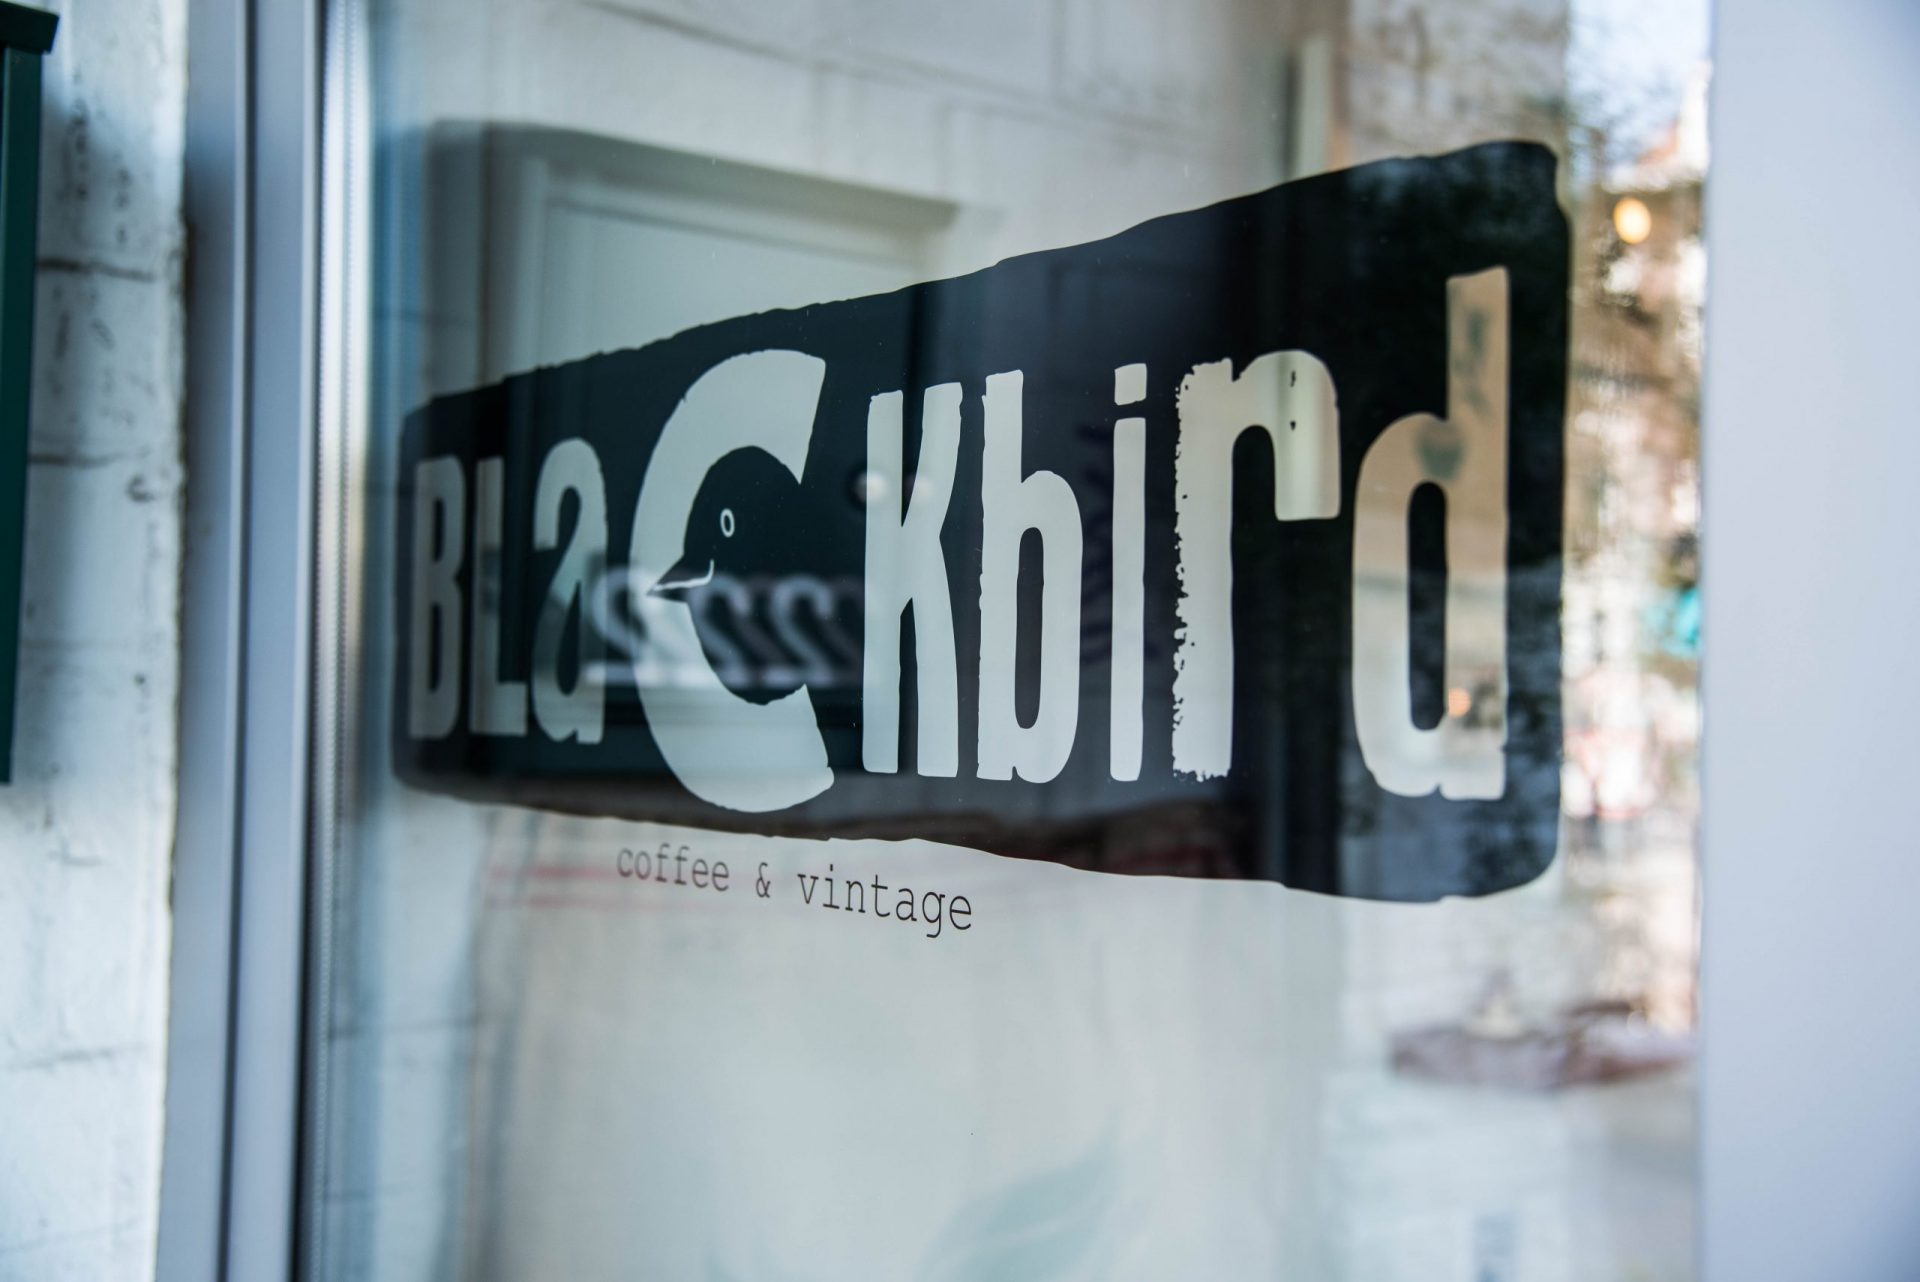 Blackbird coffee & vintage in Utrecht